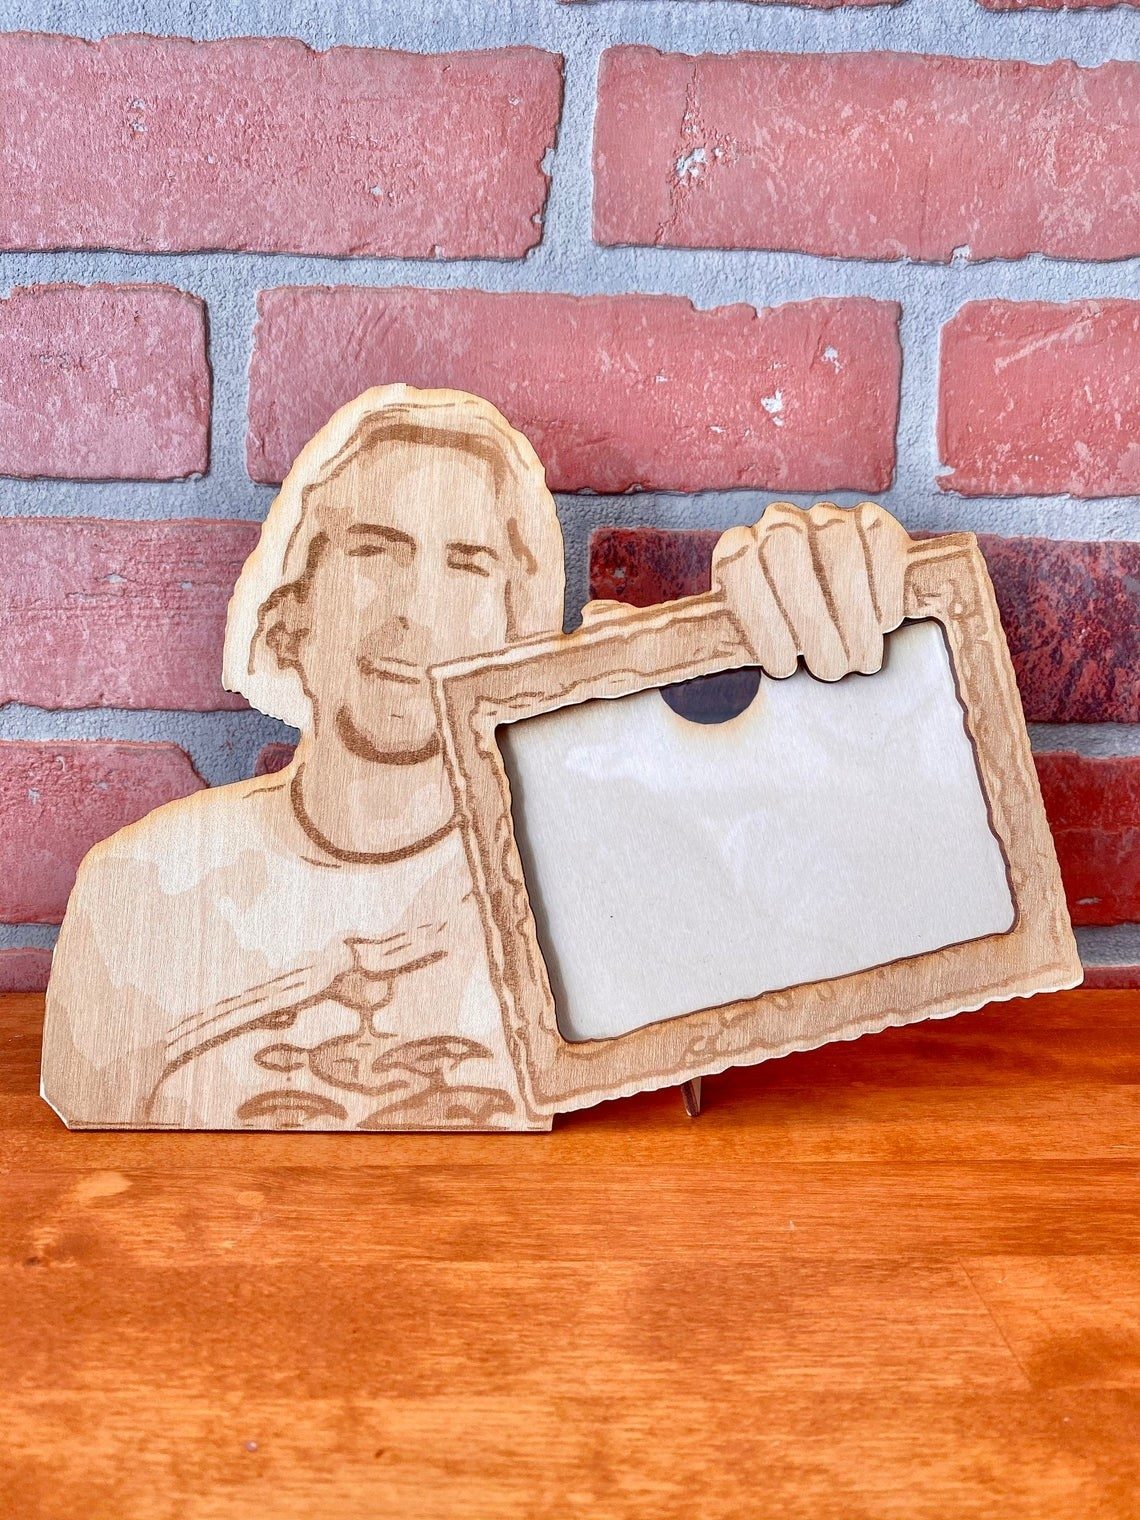 wood frame shaped like the meme of nickelback singer saying look at this photograph